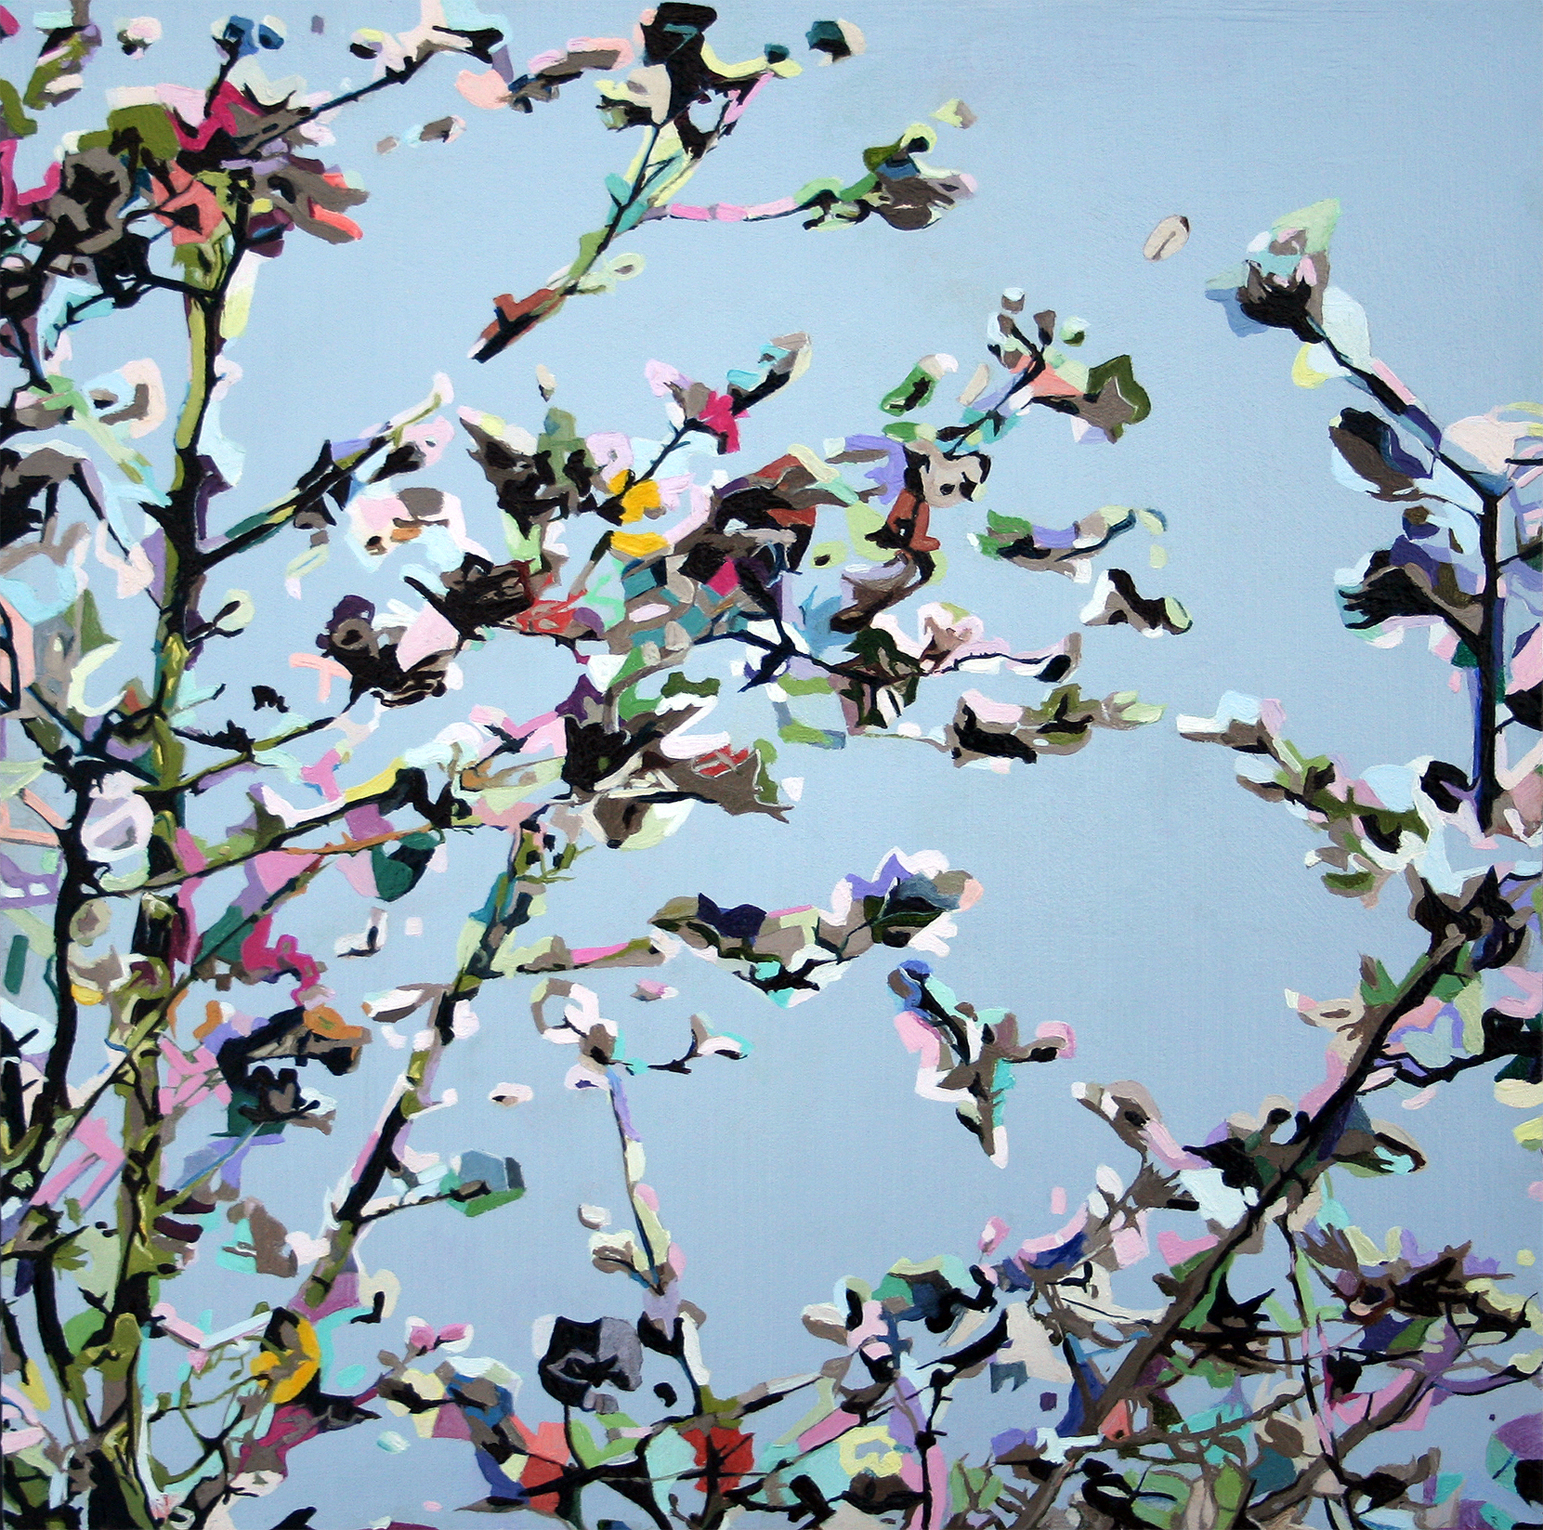 Magnolia Blue by  at the Saffron Walden Gallery